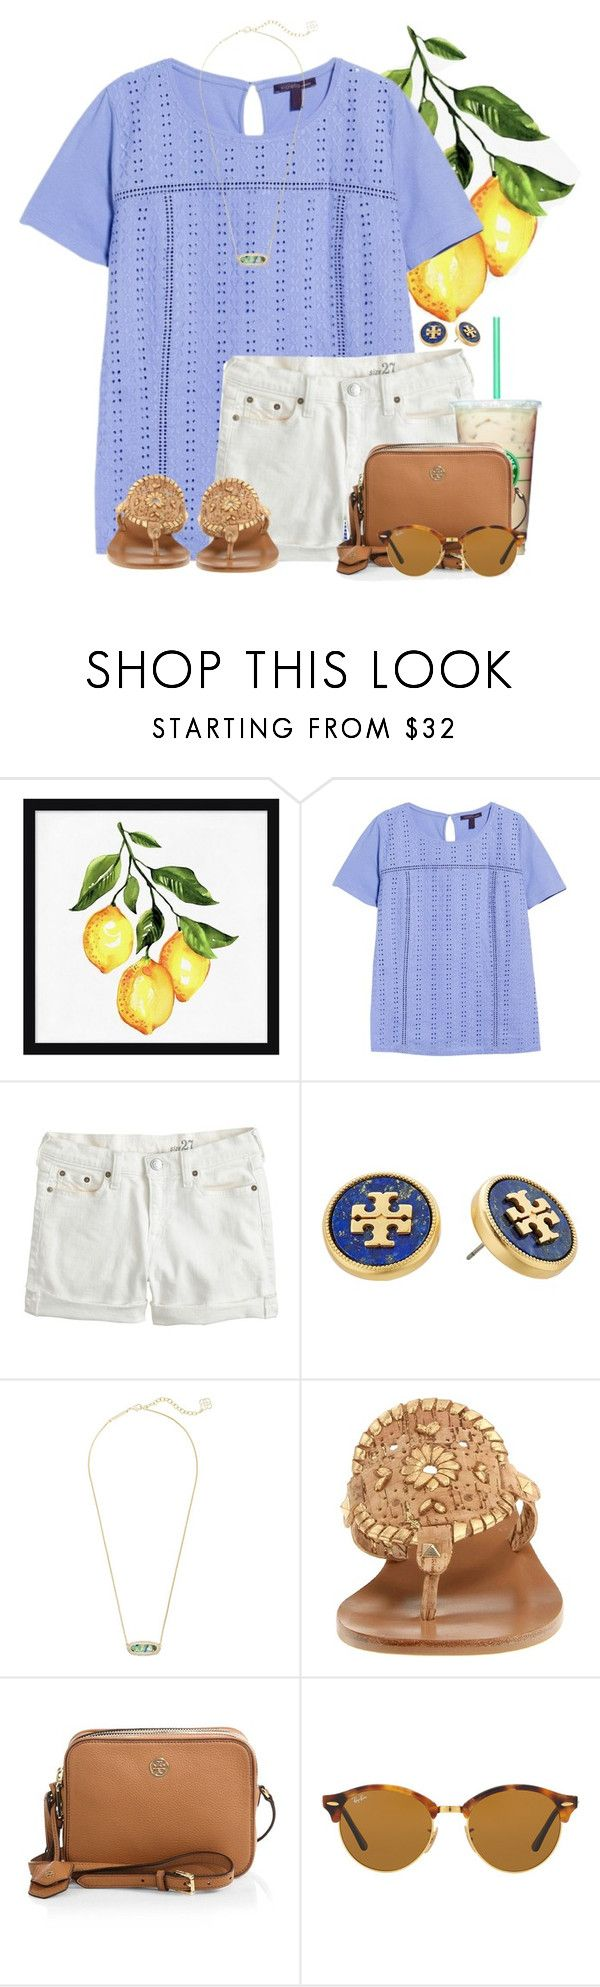 """Gilmore Girls or 13 Reasons Why??"" by flroasburn ❤ liked on Polyvore featuring Pottery Barn, Violeta by Mango, J.Crew, Tory Burch, Kendra Scott, Jack Rogers and Ray-Ban"